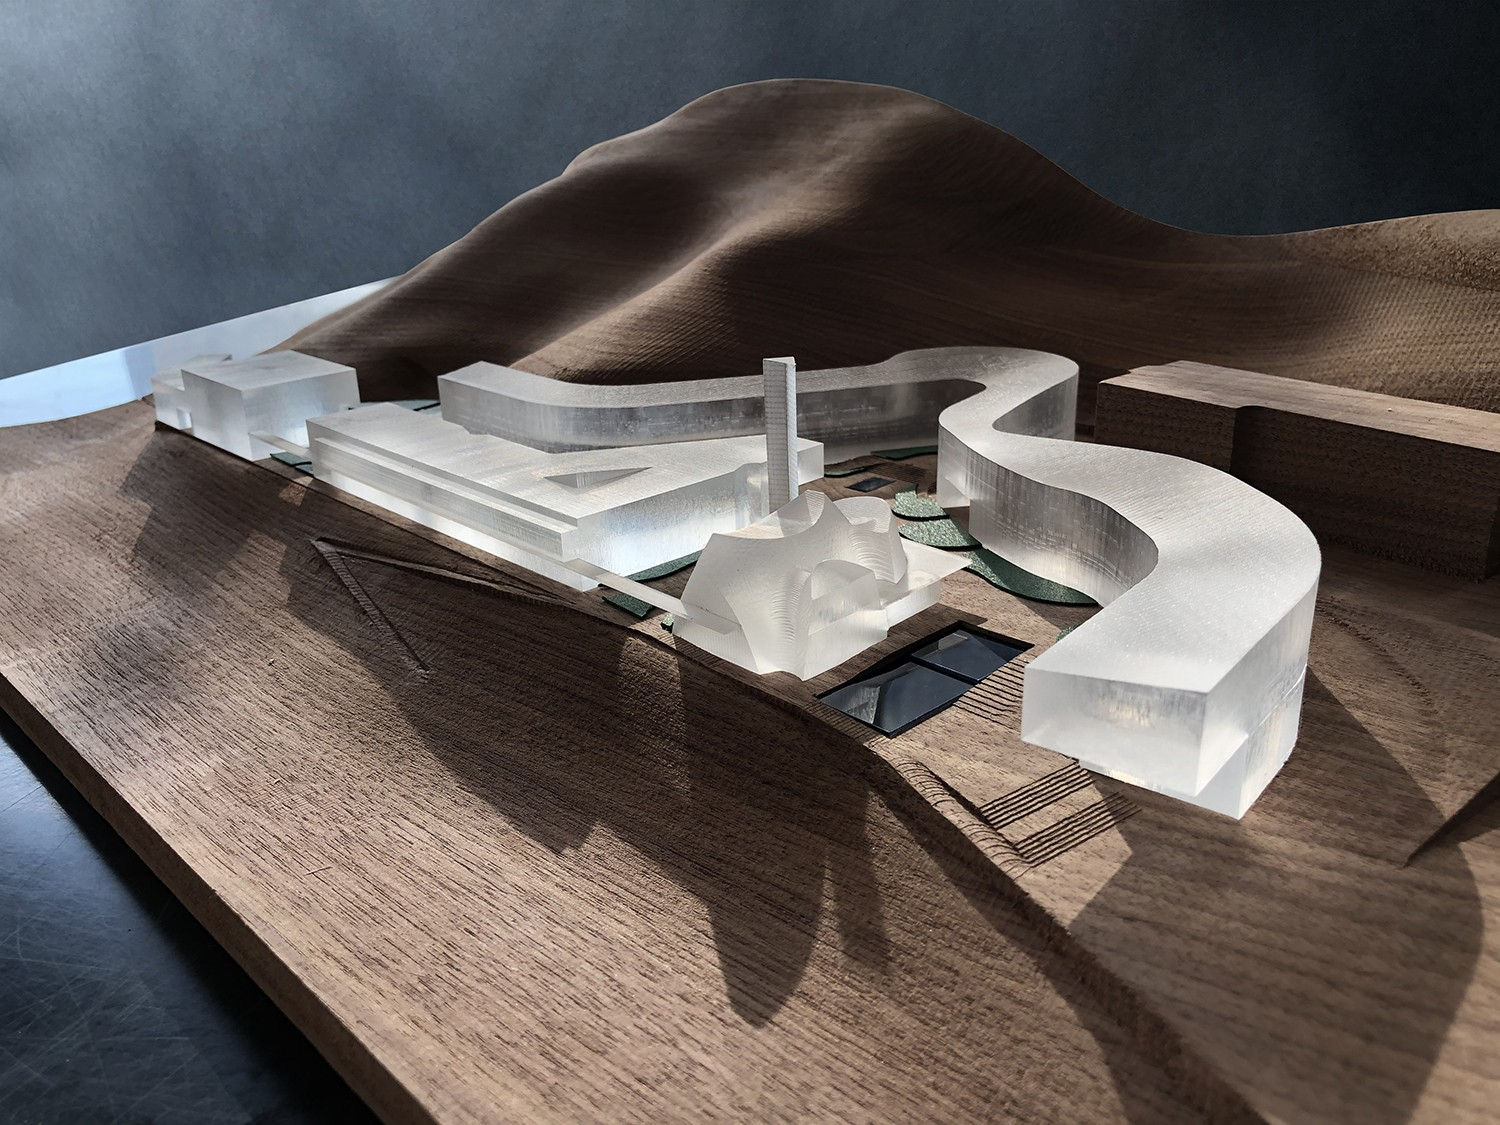 https://stevenholl.sfo2.digitaloceanspaces.com/uploads/projects/project-images/model1.jpg